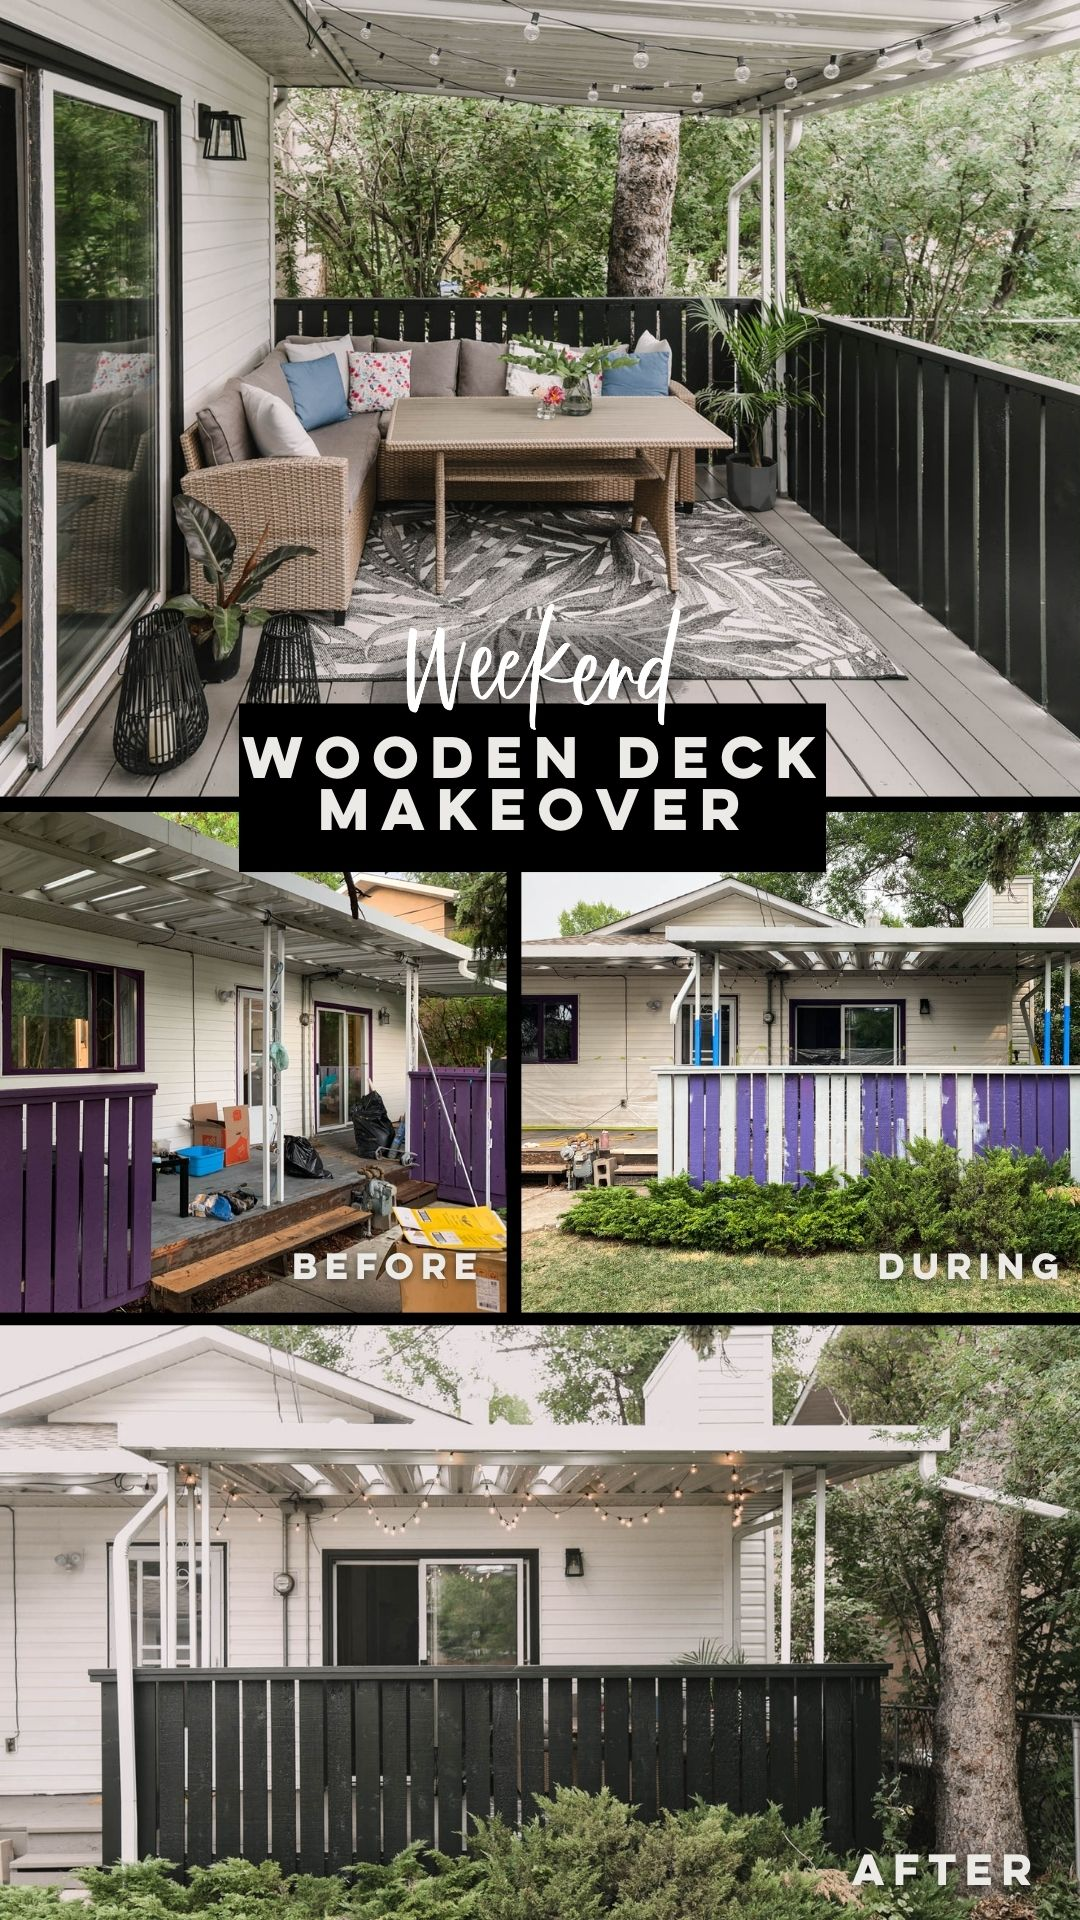 Wooden Deck Makeover done in a Weekend!